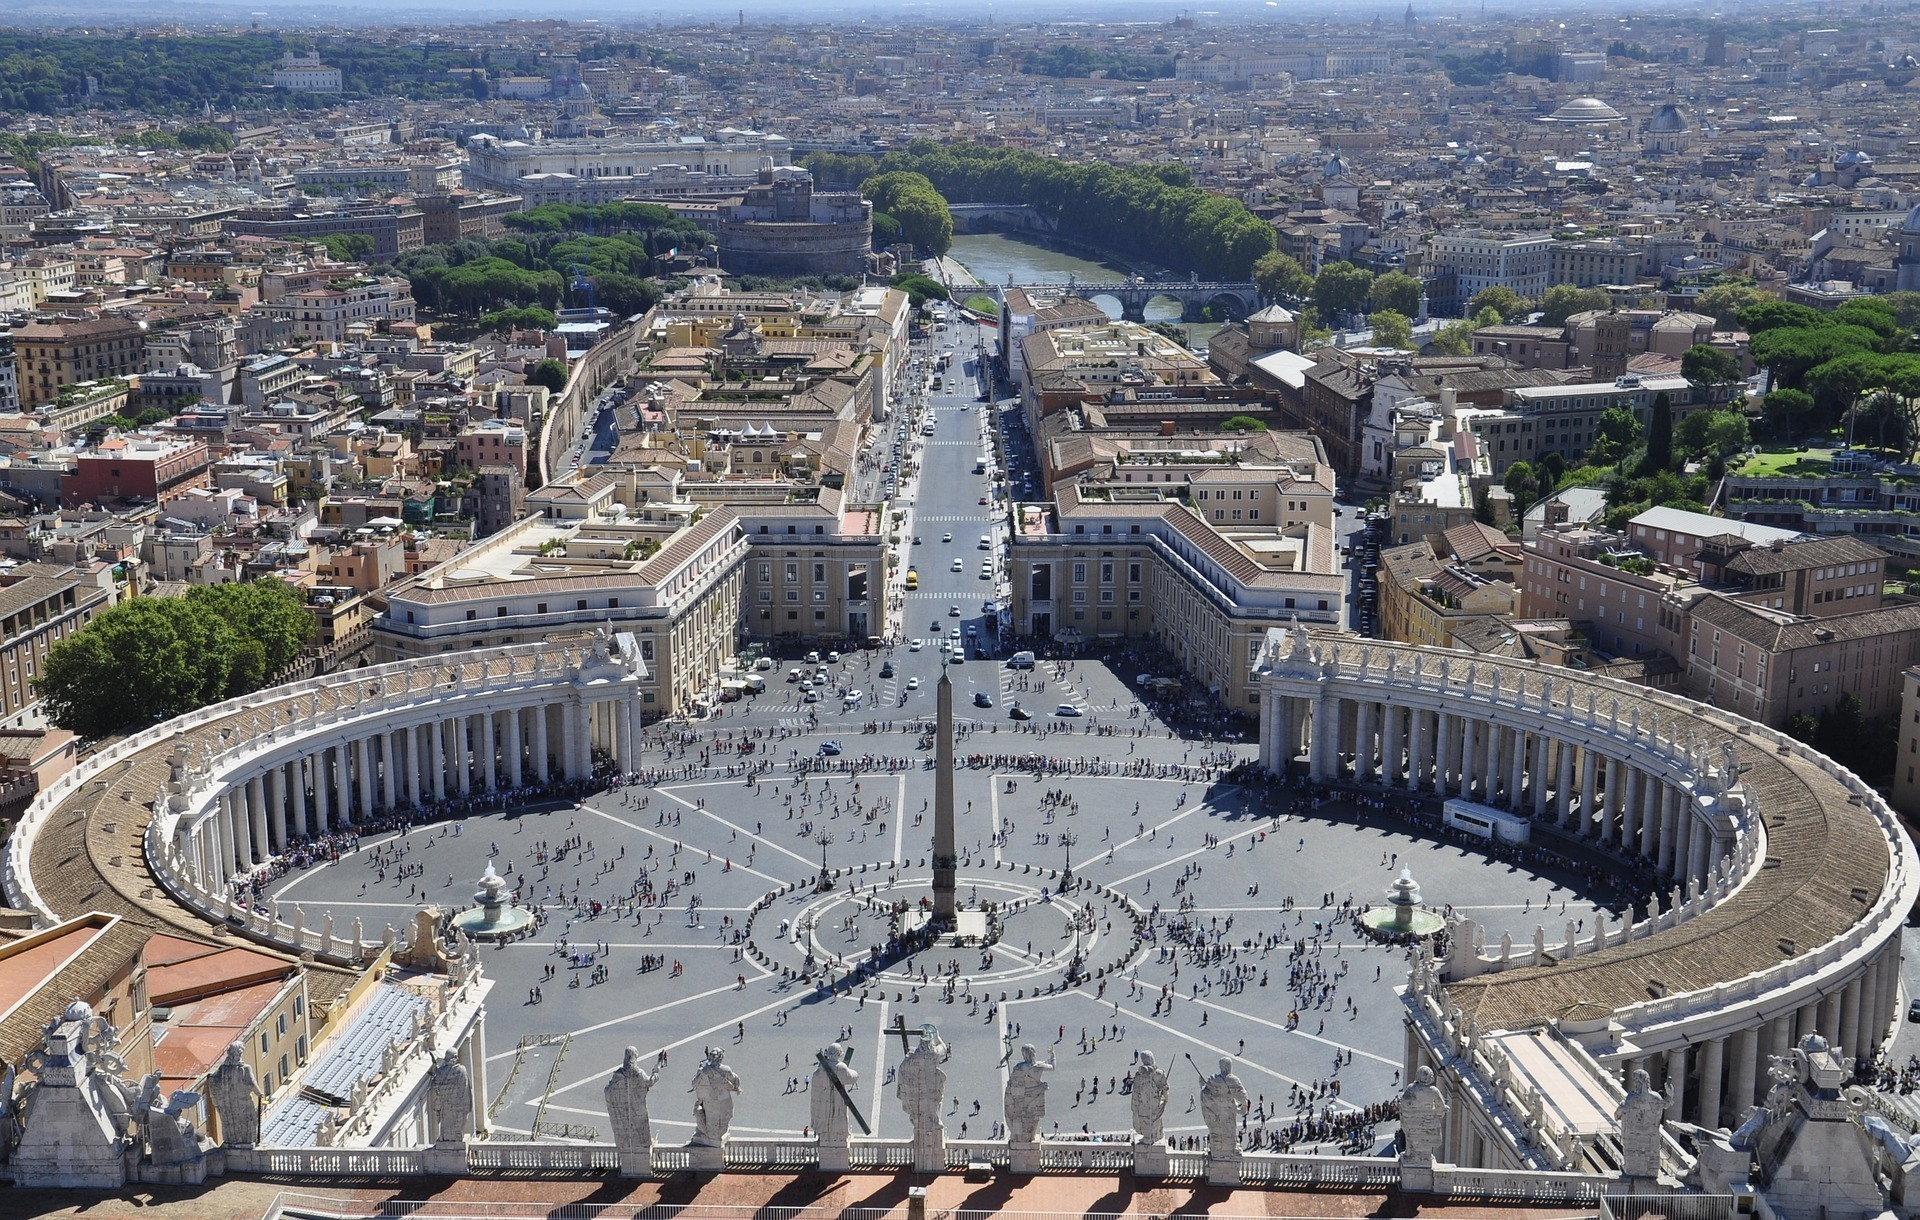 St Peter's Square, The Vatican